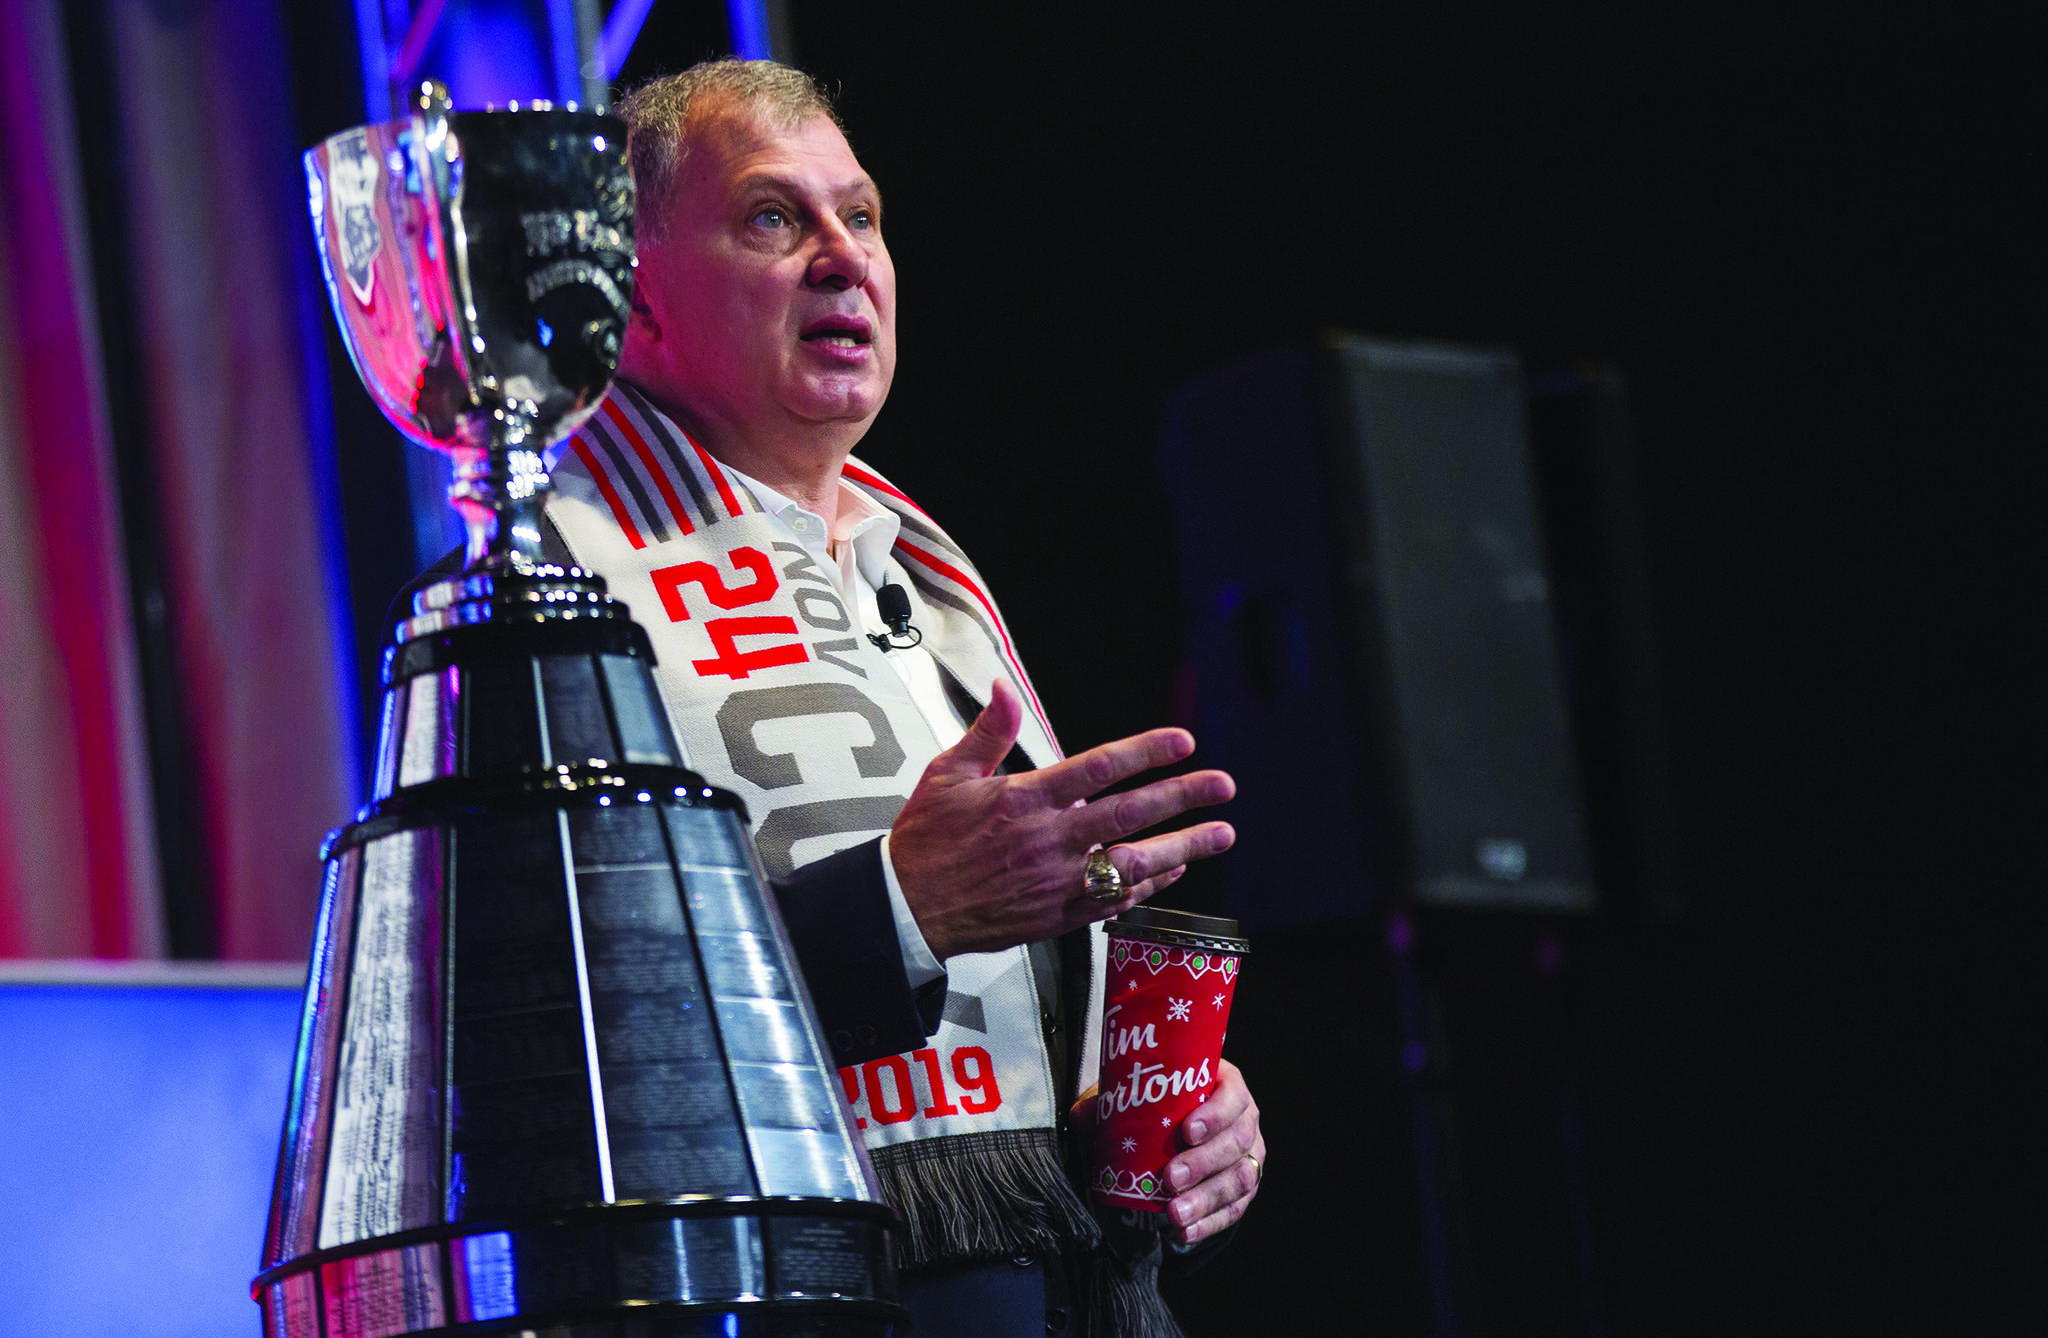 Canadian Football League commissioner Randy Ambrosie delivers his annual state of the league address to reporters during the CFL Grey Cup week in Calgary, Friday, Nov. 22, 2019. Ambrosie can see the CFL going global in 2021. The CFL commissioner said Tuesday during the league???s winter meetings the league will likely play a regular-season game outside of Canada sometime in 2021.THE CANADIAN PRESS/Todd Korol